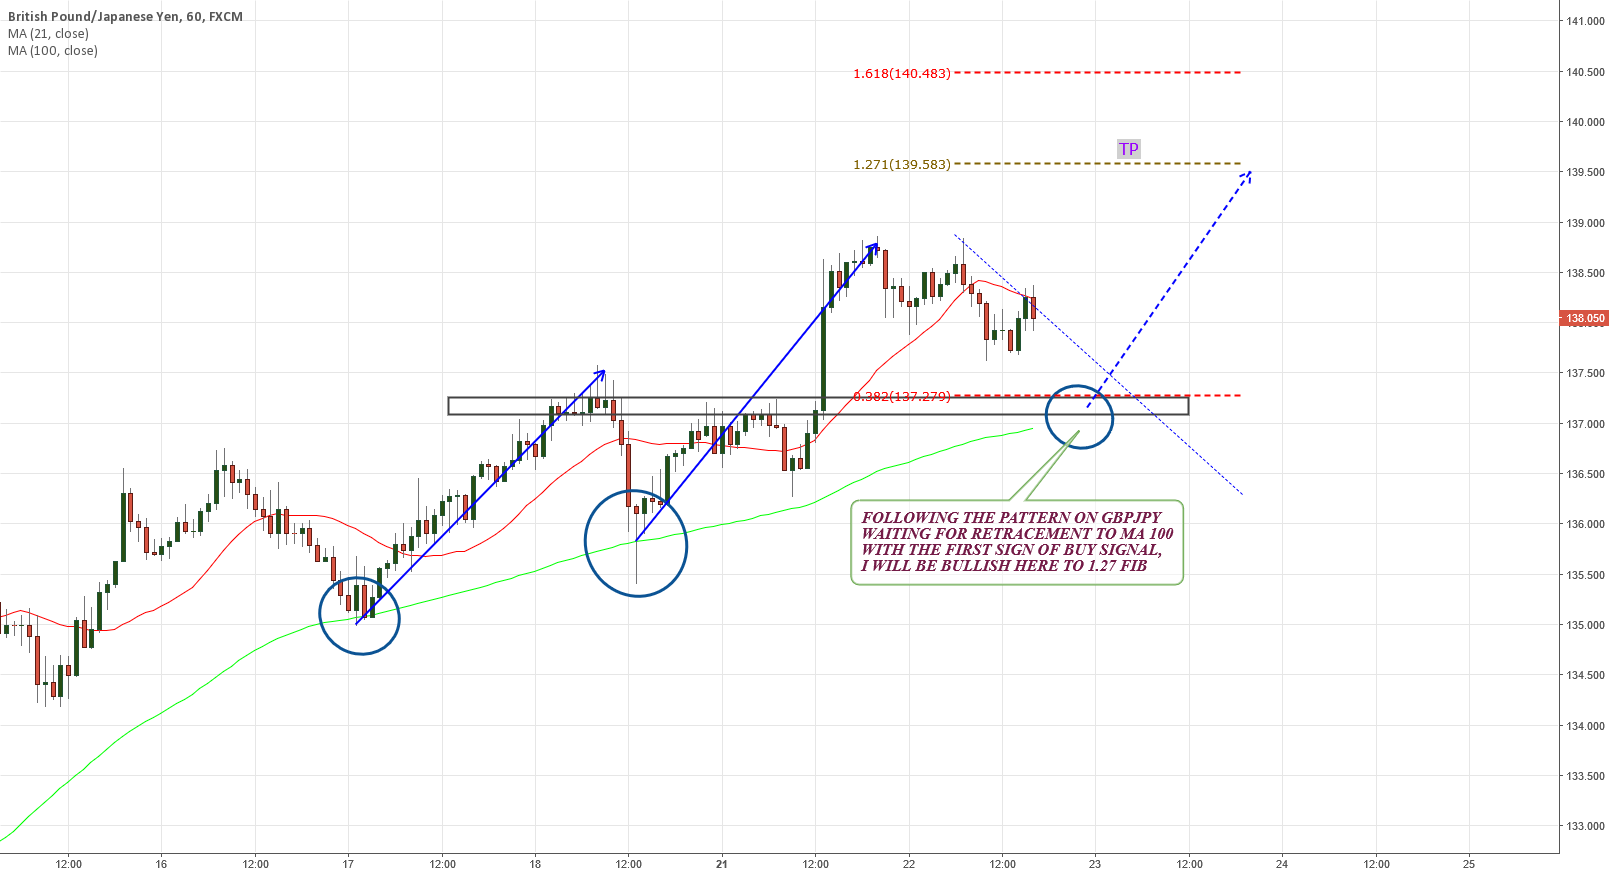 GBPJPY WAITING FOR PULL BACK TO MA 100